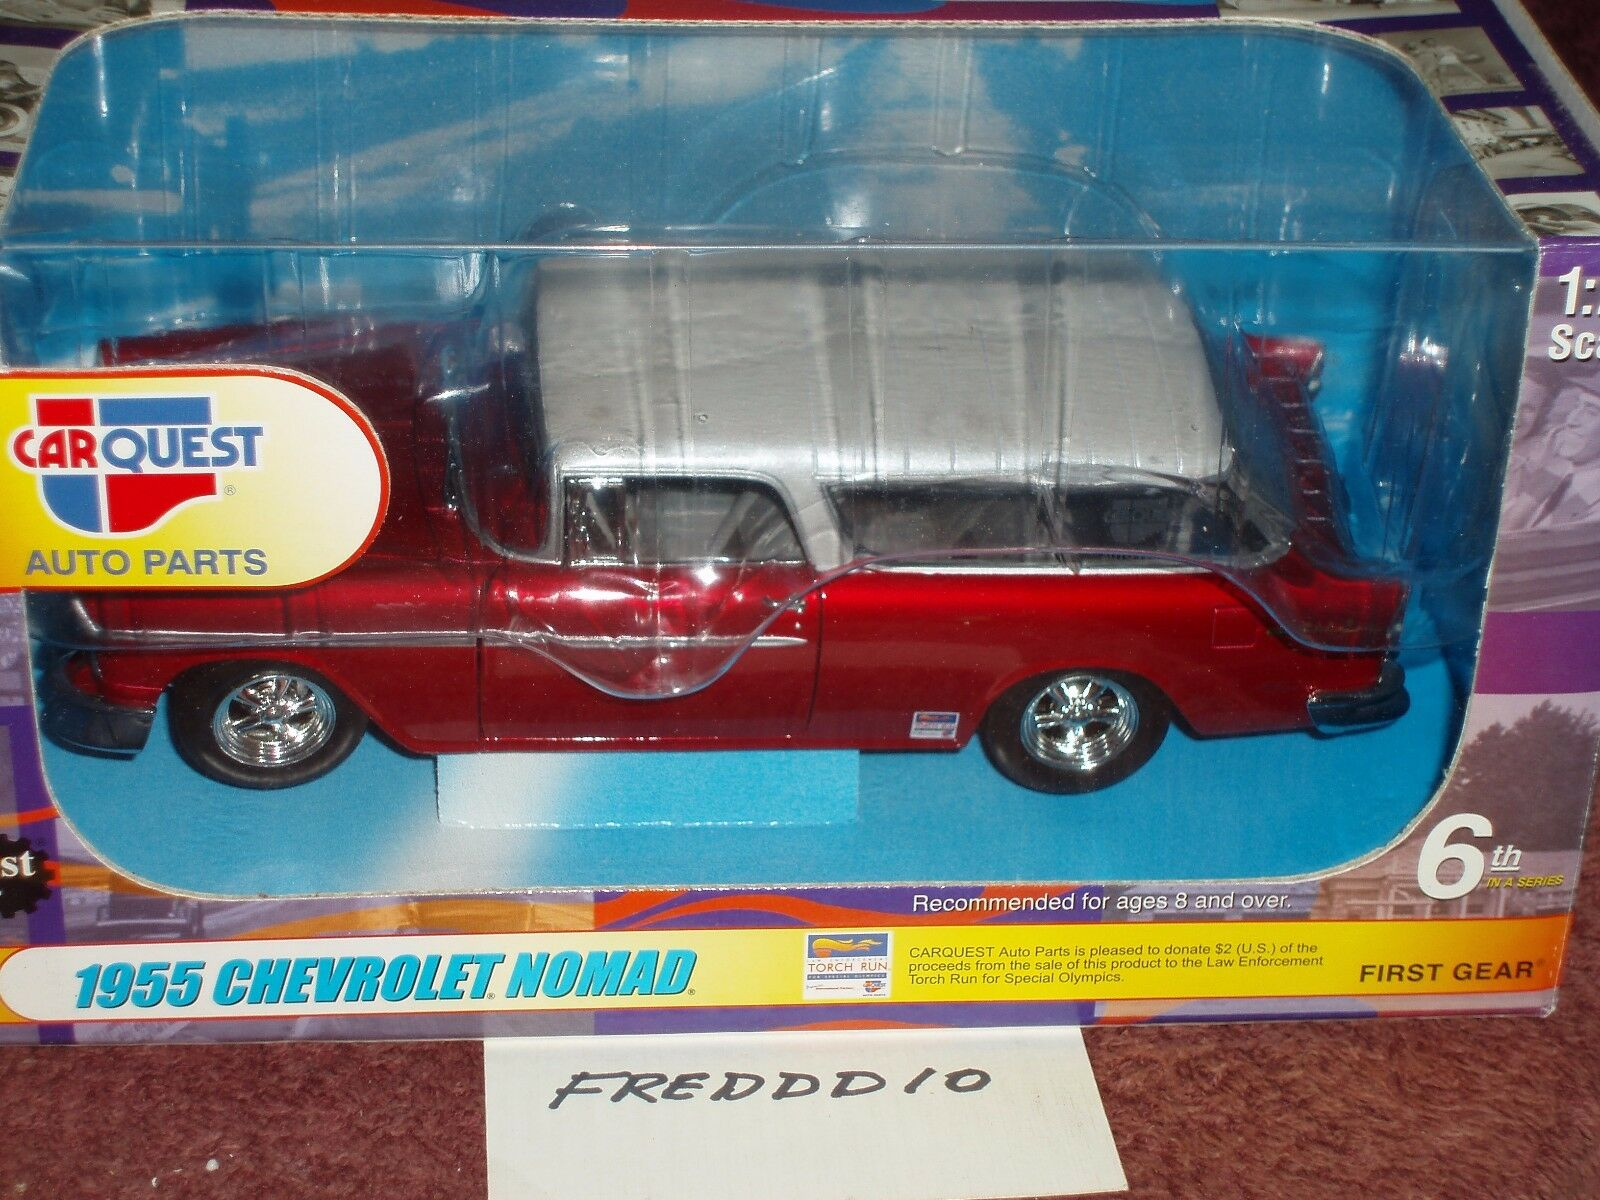 1st GEAR 1955 CHEVY NOMAD 1 25 CARQUEST AUTO PARTS VHTF